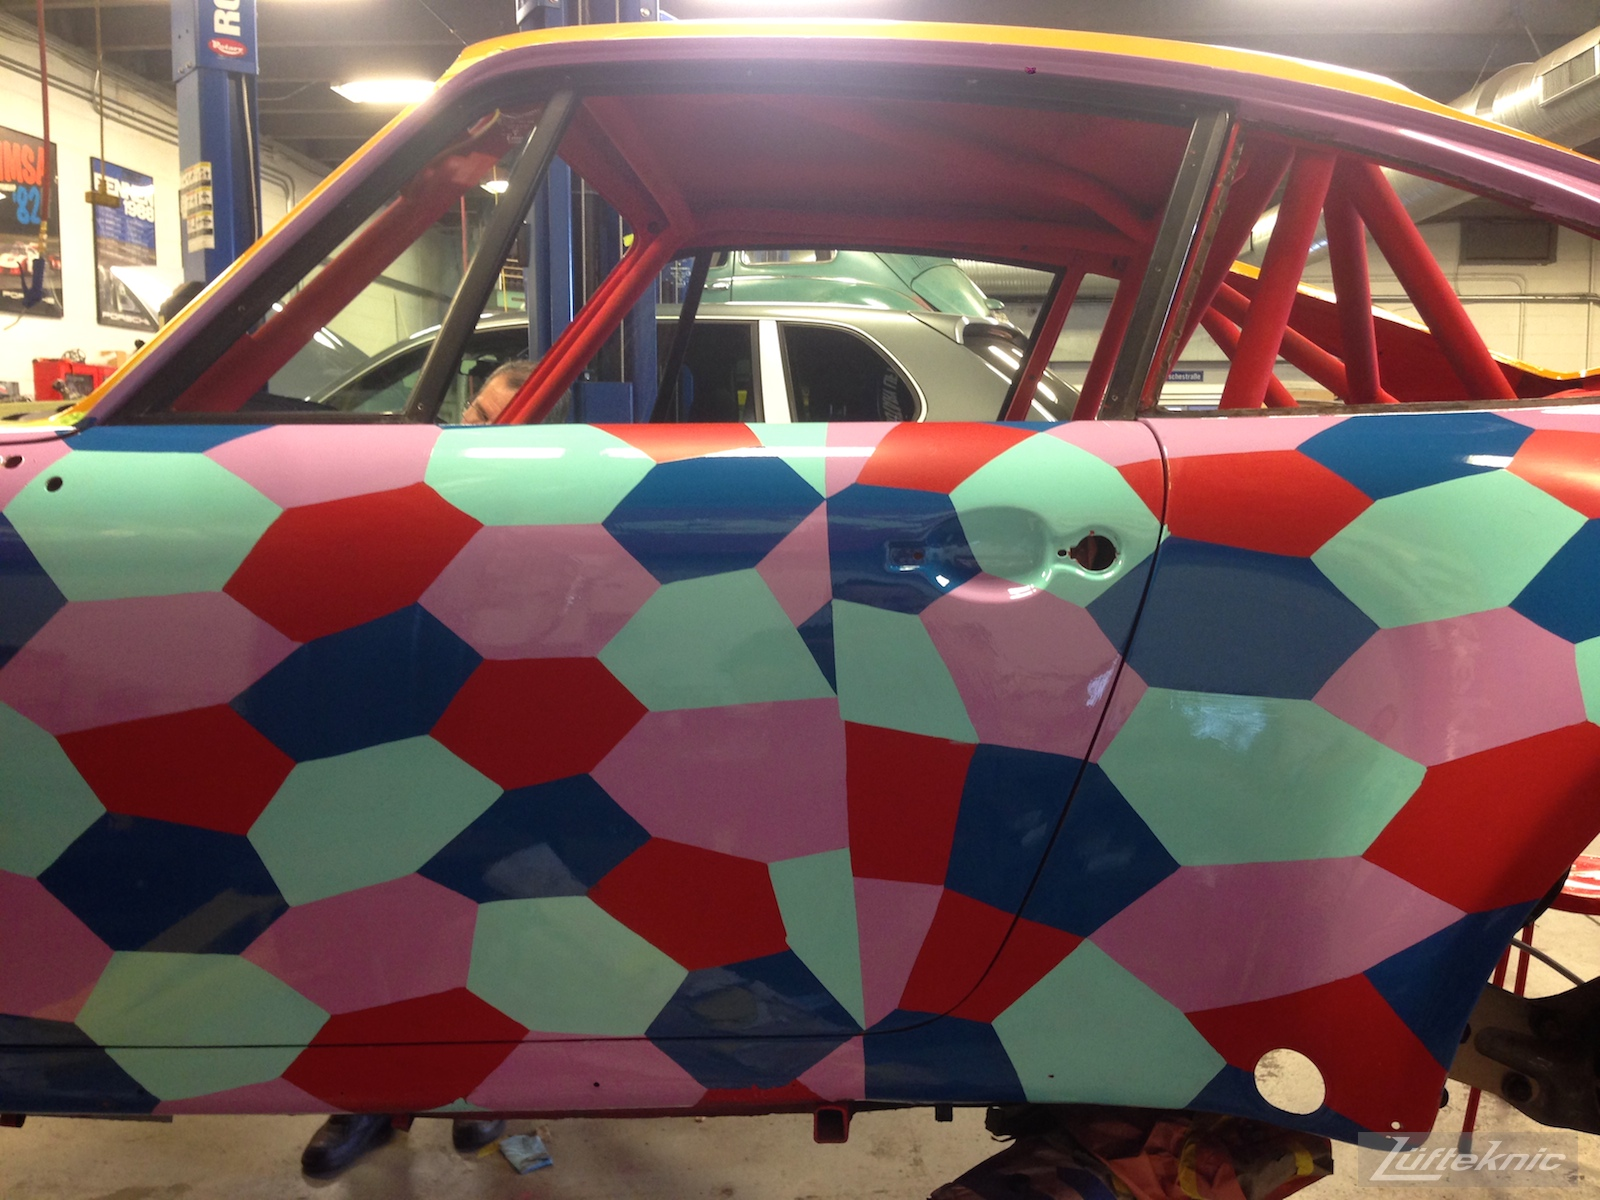 75% complete lozenge camofalge pattern on the side of projectstuka Porsche 930